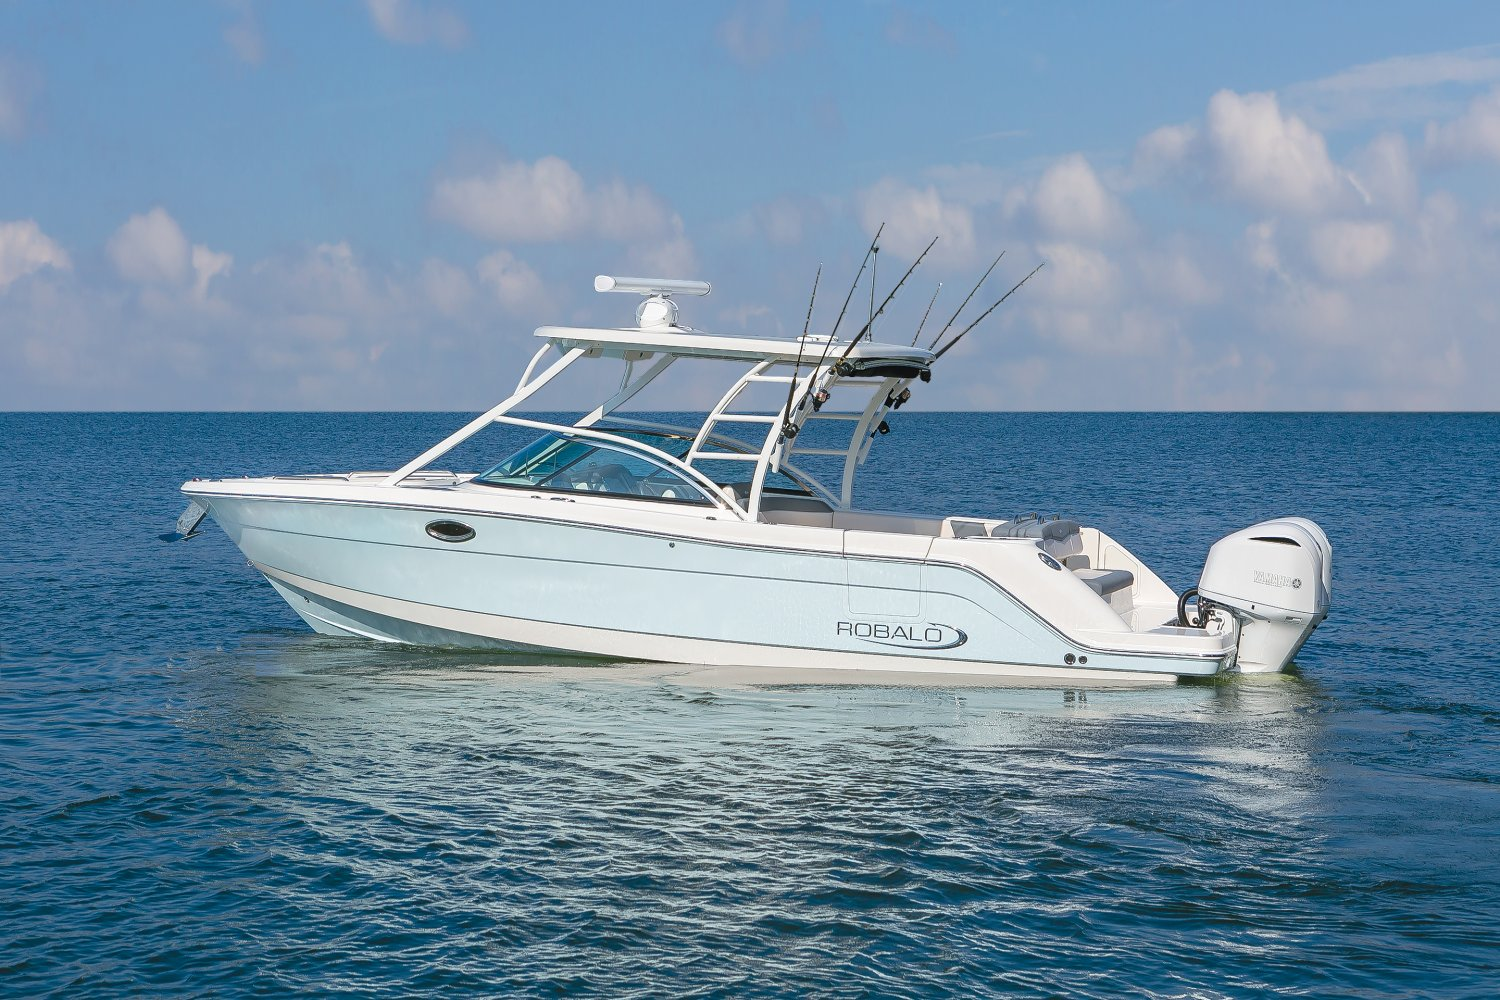 If you are looking to buy a Robalo boat in NJ or MD, Waterfront Marine can help you from start to finish